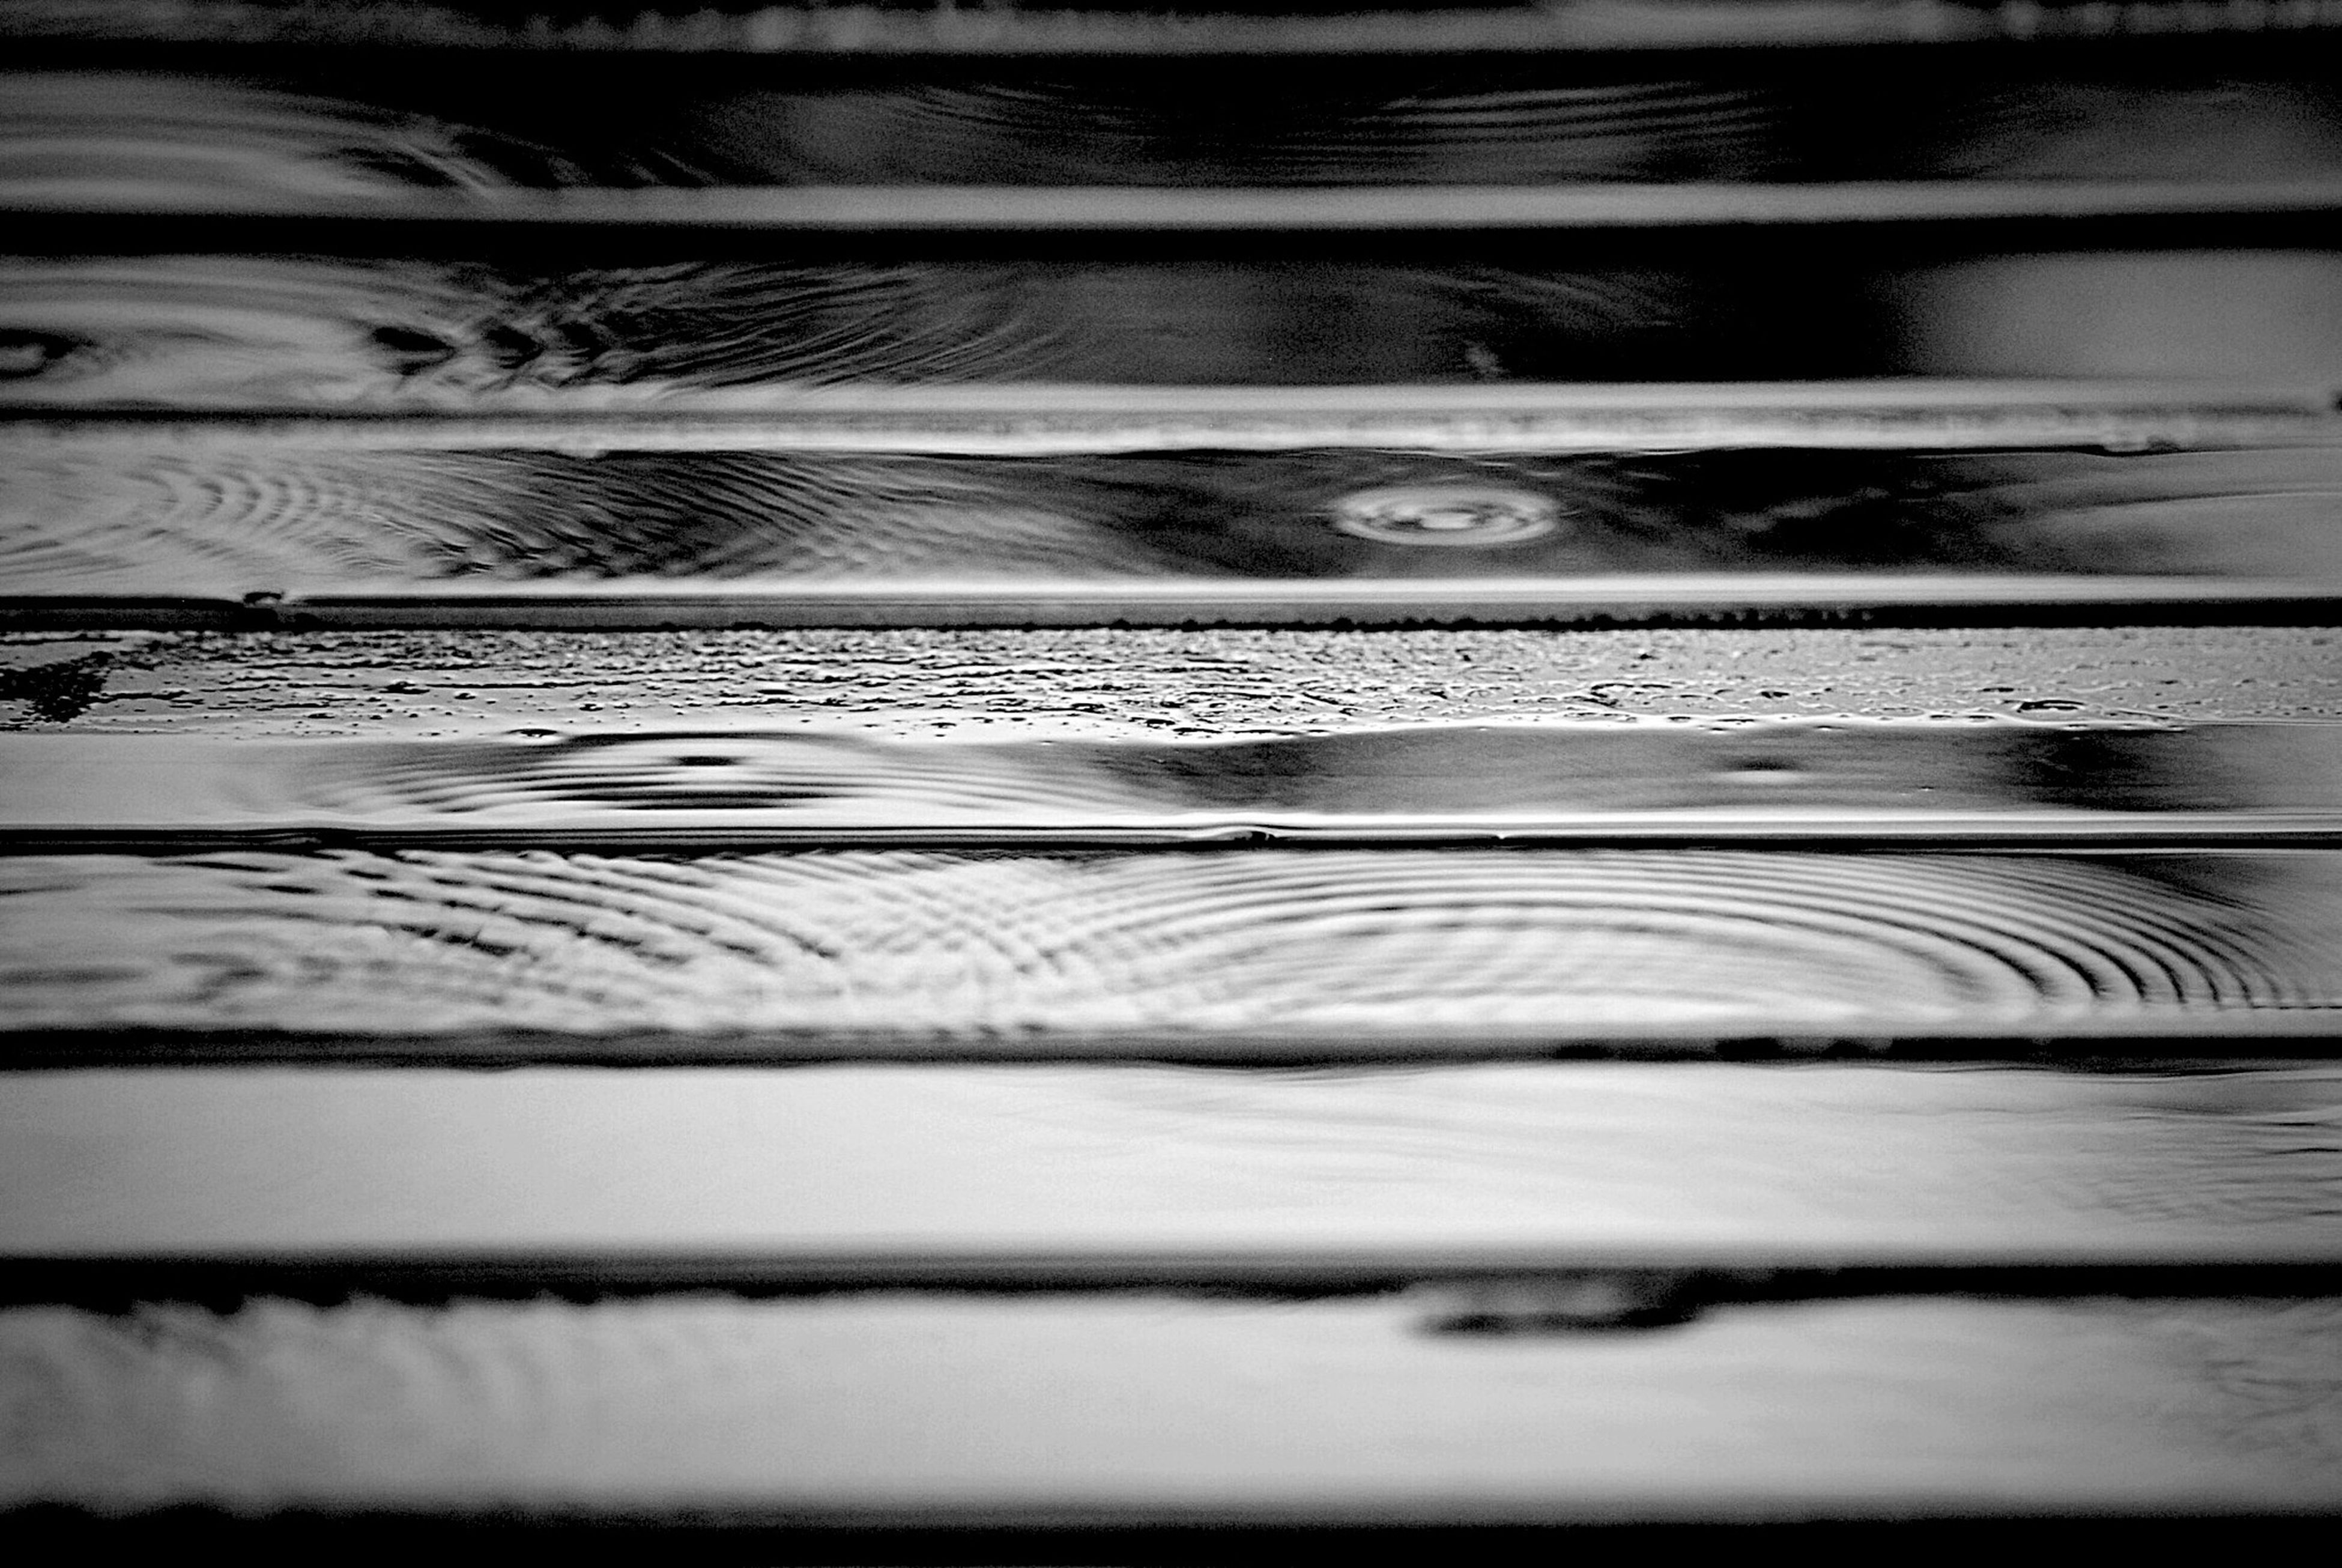 pattern, wood - material, winter, snow, shadow, cold temperature, nature, no people, high angle view, outdoors, textured, day, tranquility, wooden, close-up, backgrounds, water, full frame, railing, sunlight